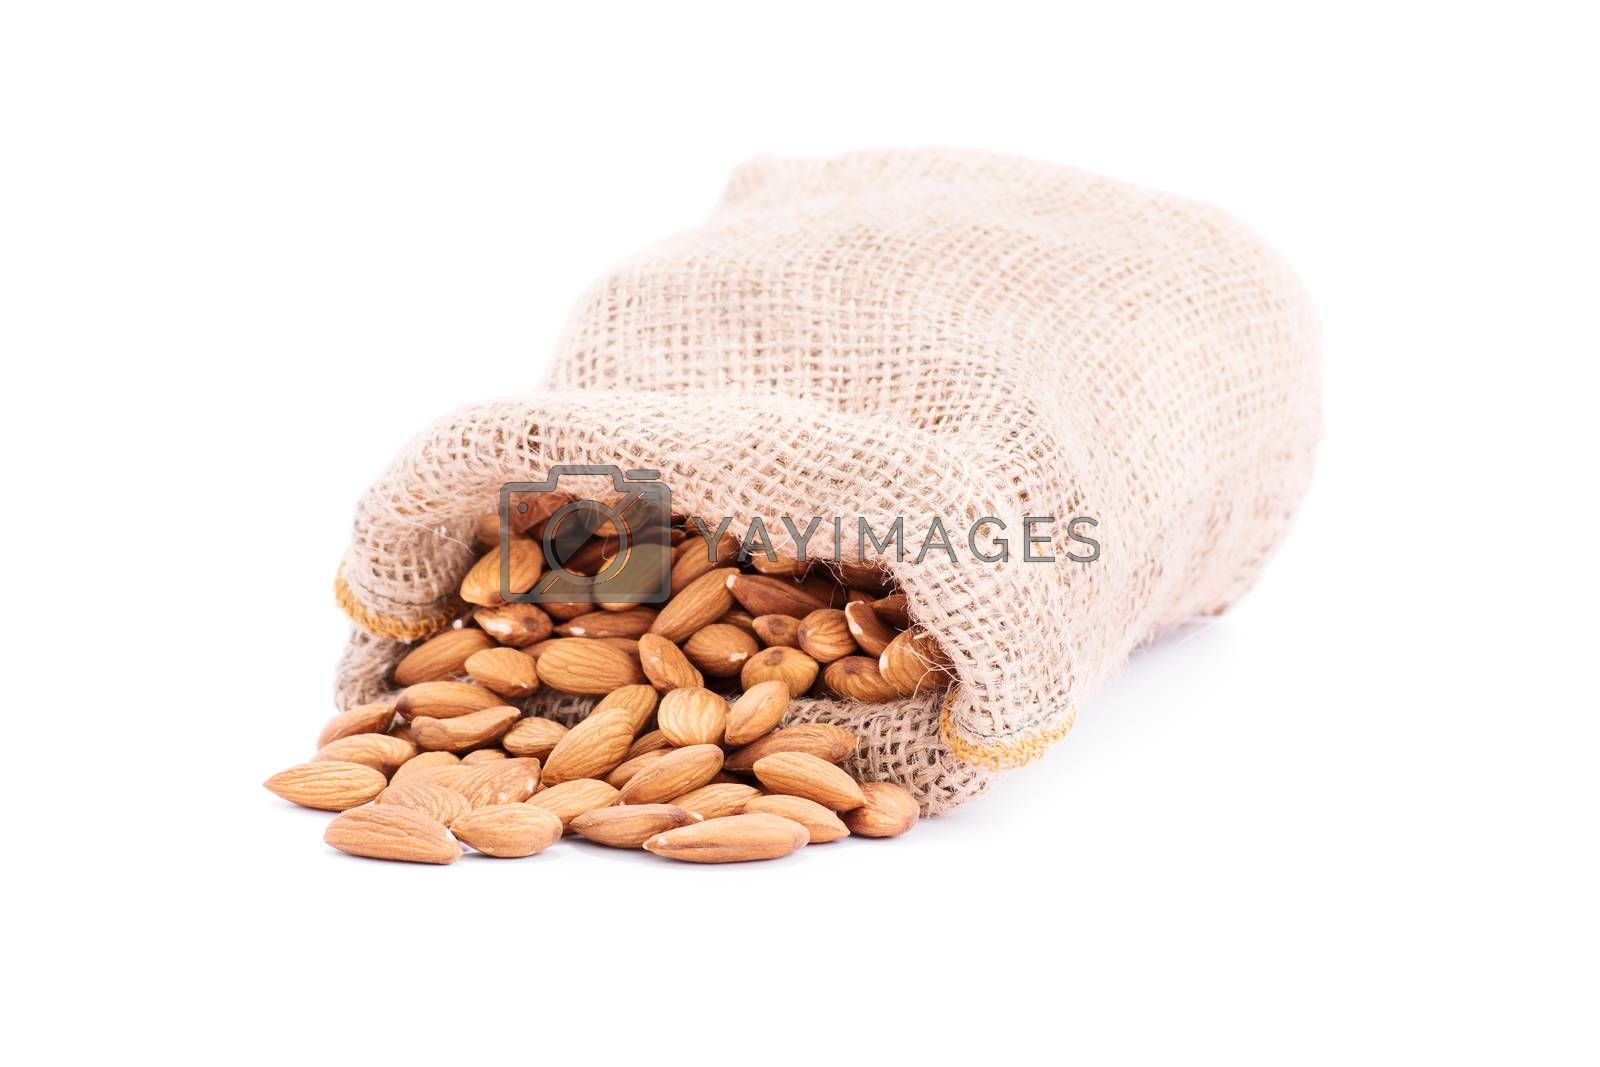 Close up shot of spilled burlap sack of almonds, isolated on white background.